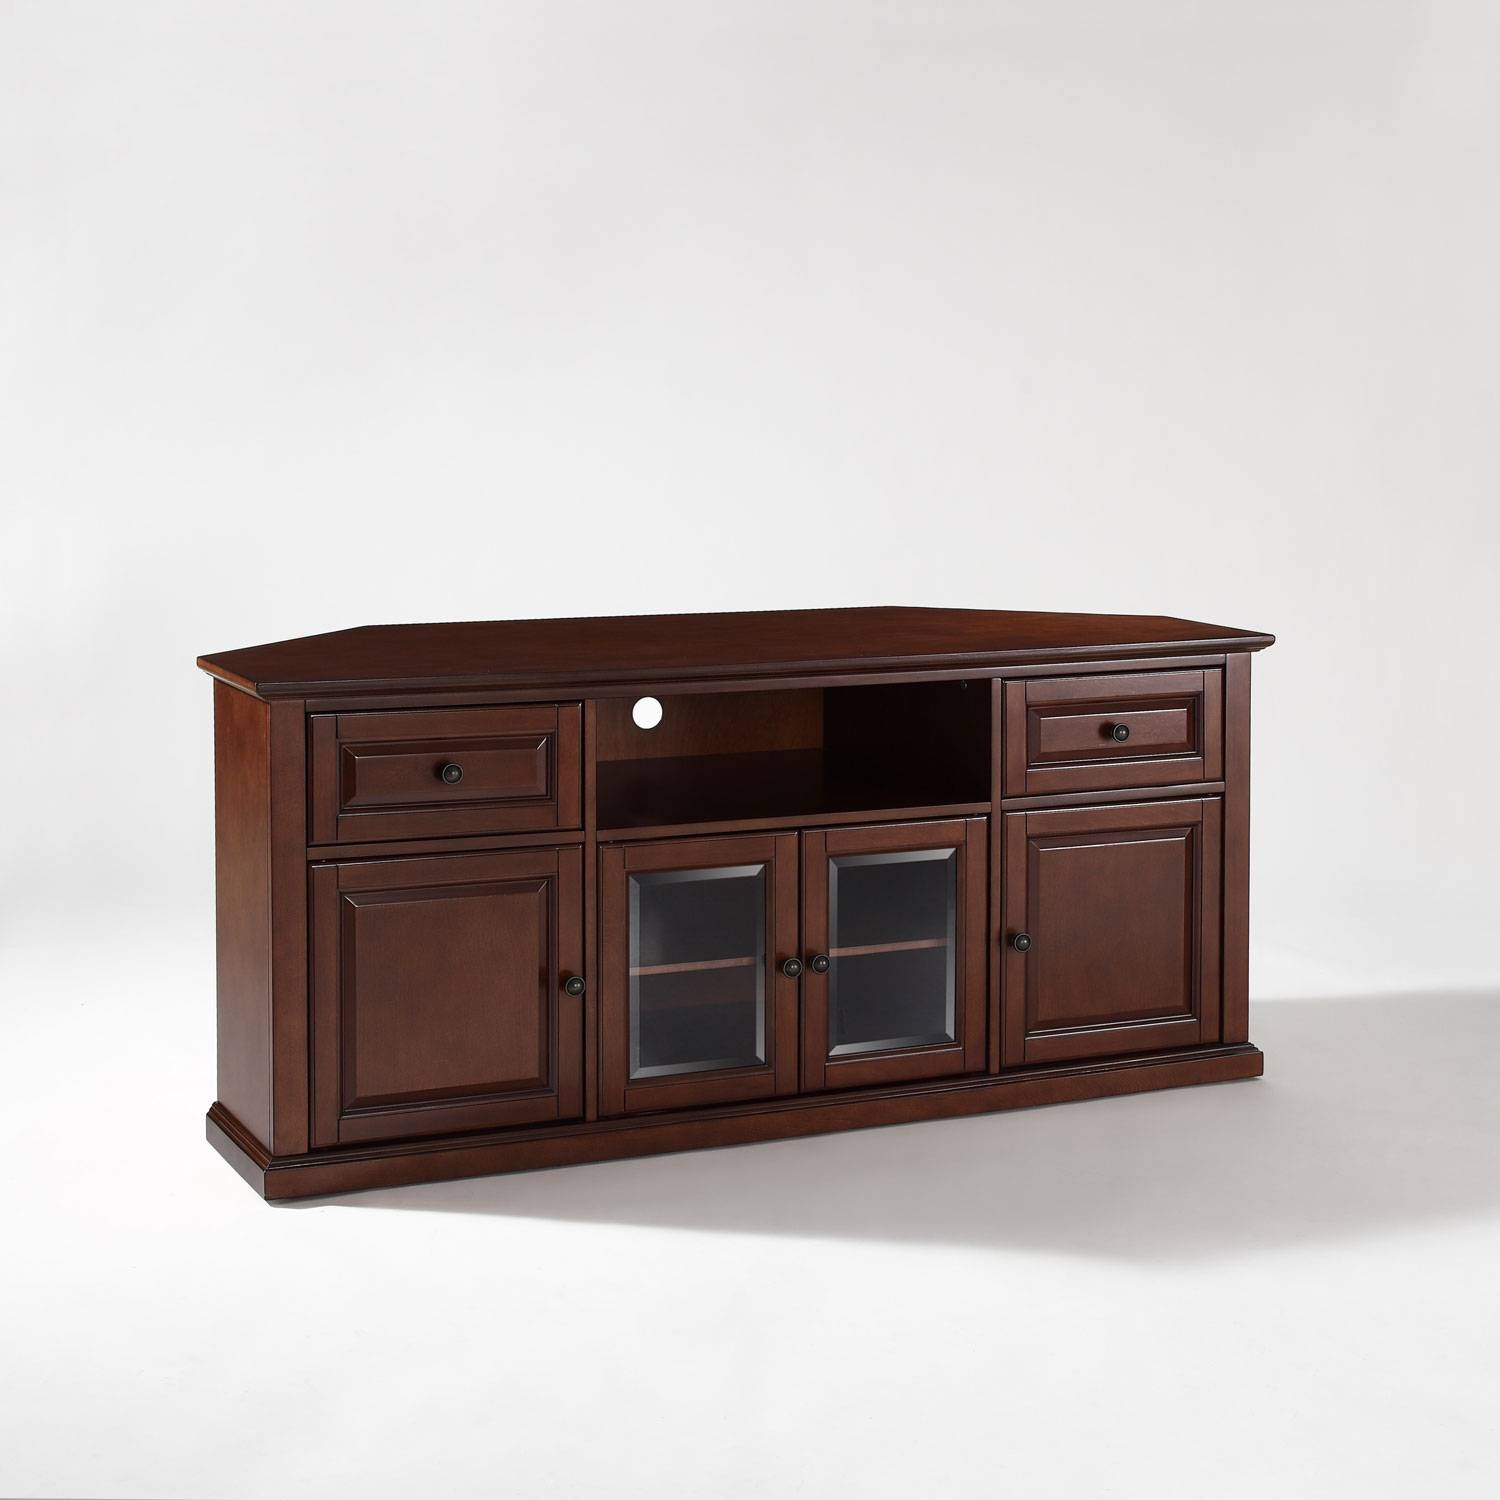 Tv Stands & Cabinets On Sale | Bellacor with regard to Triangular Tv Stand (Image 13 of 15)